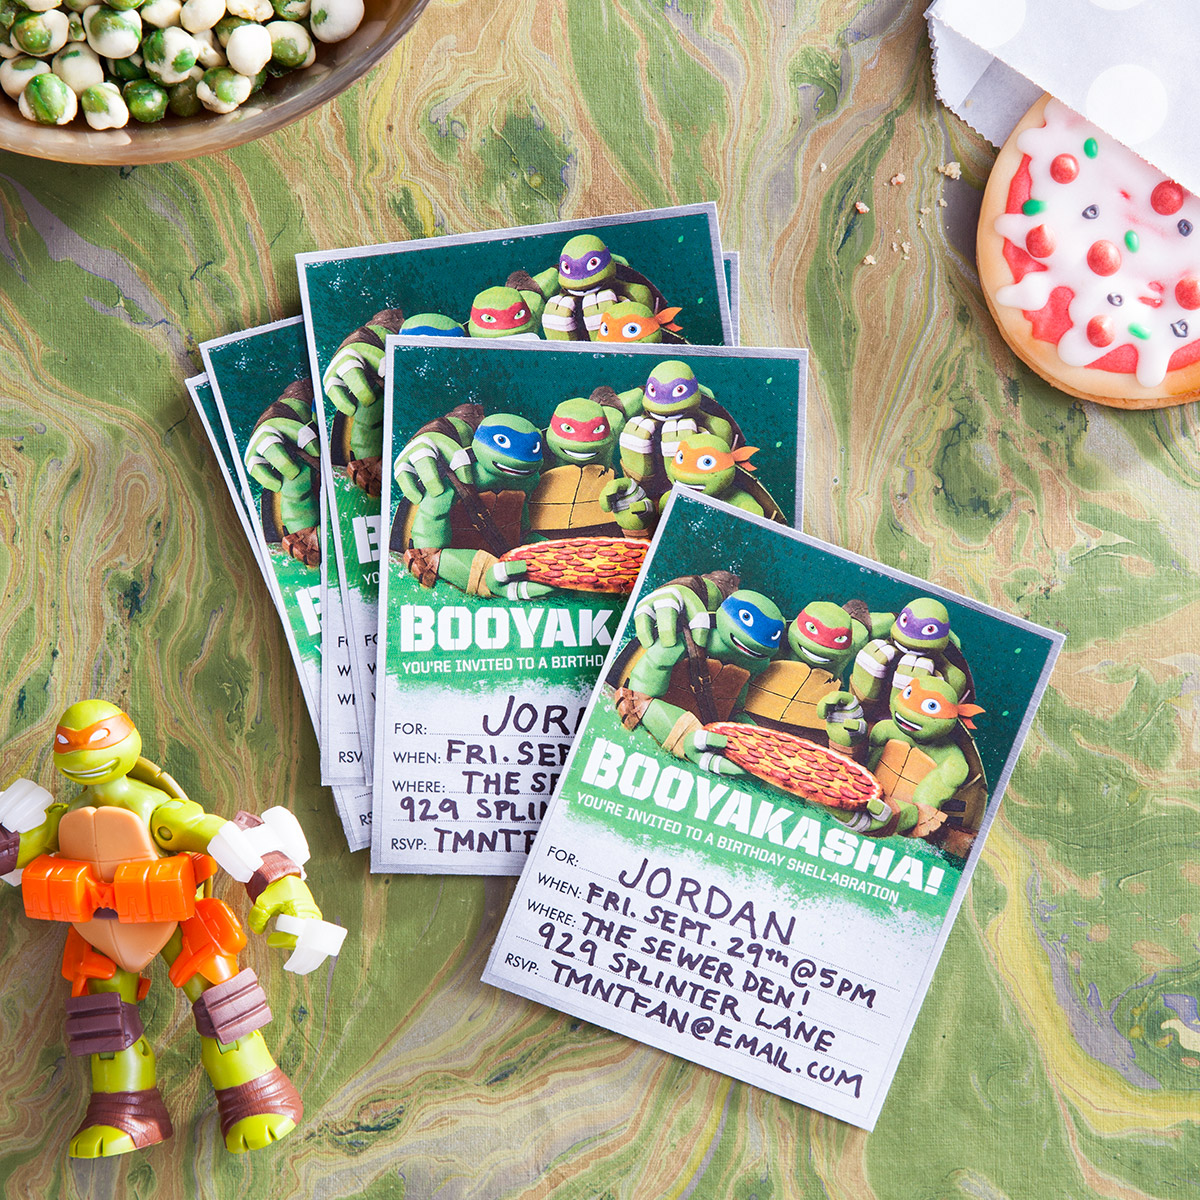 TMNT Booyakasha! Party Invitations